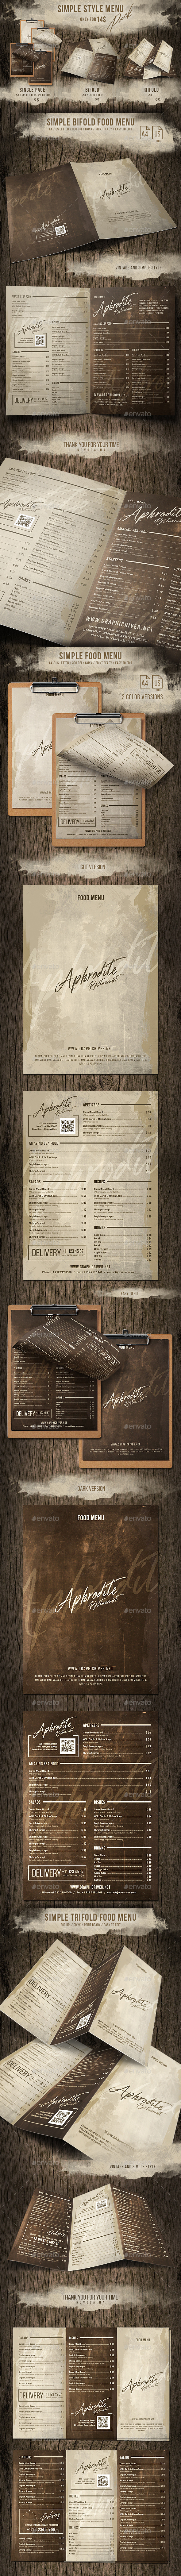 Simple Style Menu Pack (Single - Bifold - Trifold) - Food Menus Print Templates